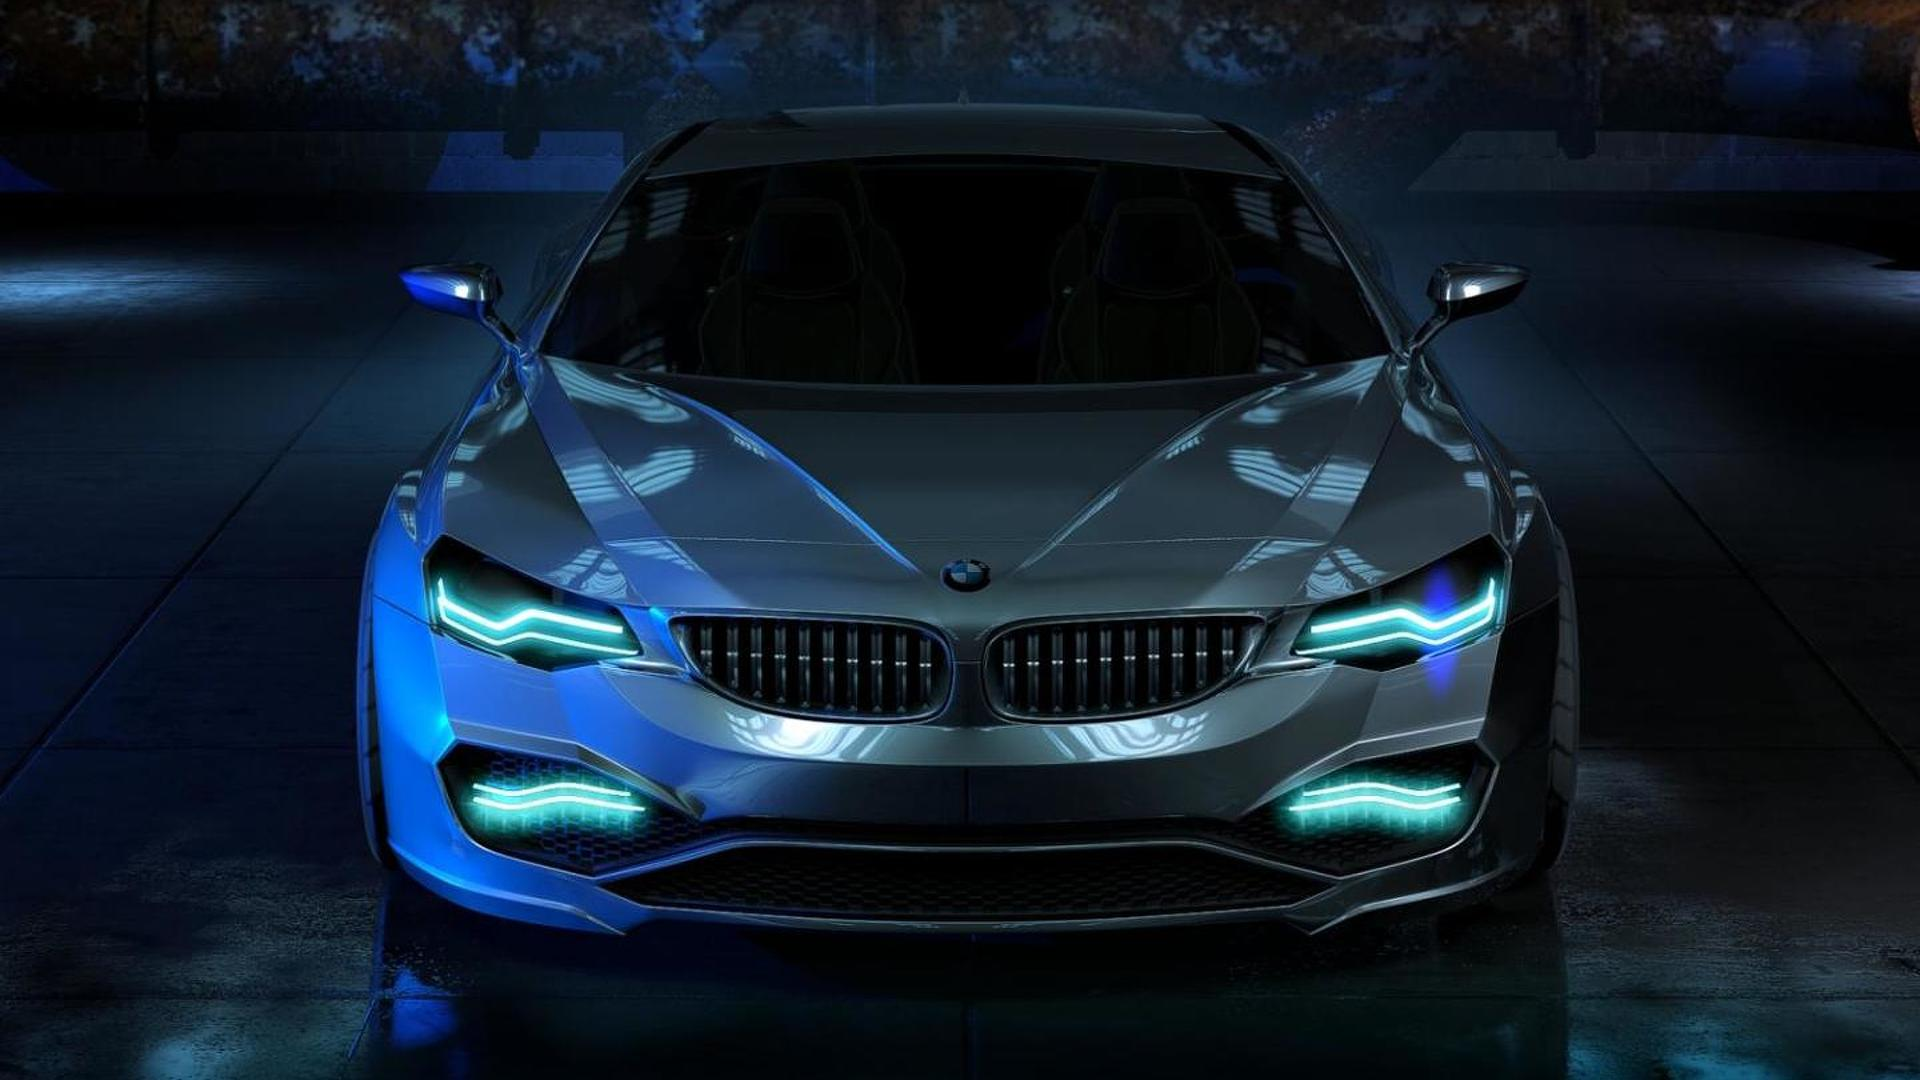 Bmw Reportedly Planning I5 I7 Plug In Hybrid Electric Model For 2018 Release To Rival Tesla S